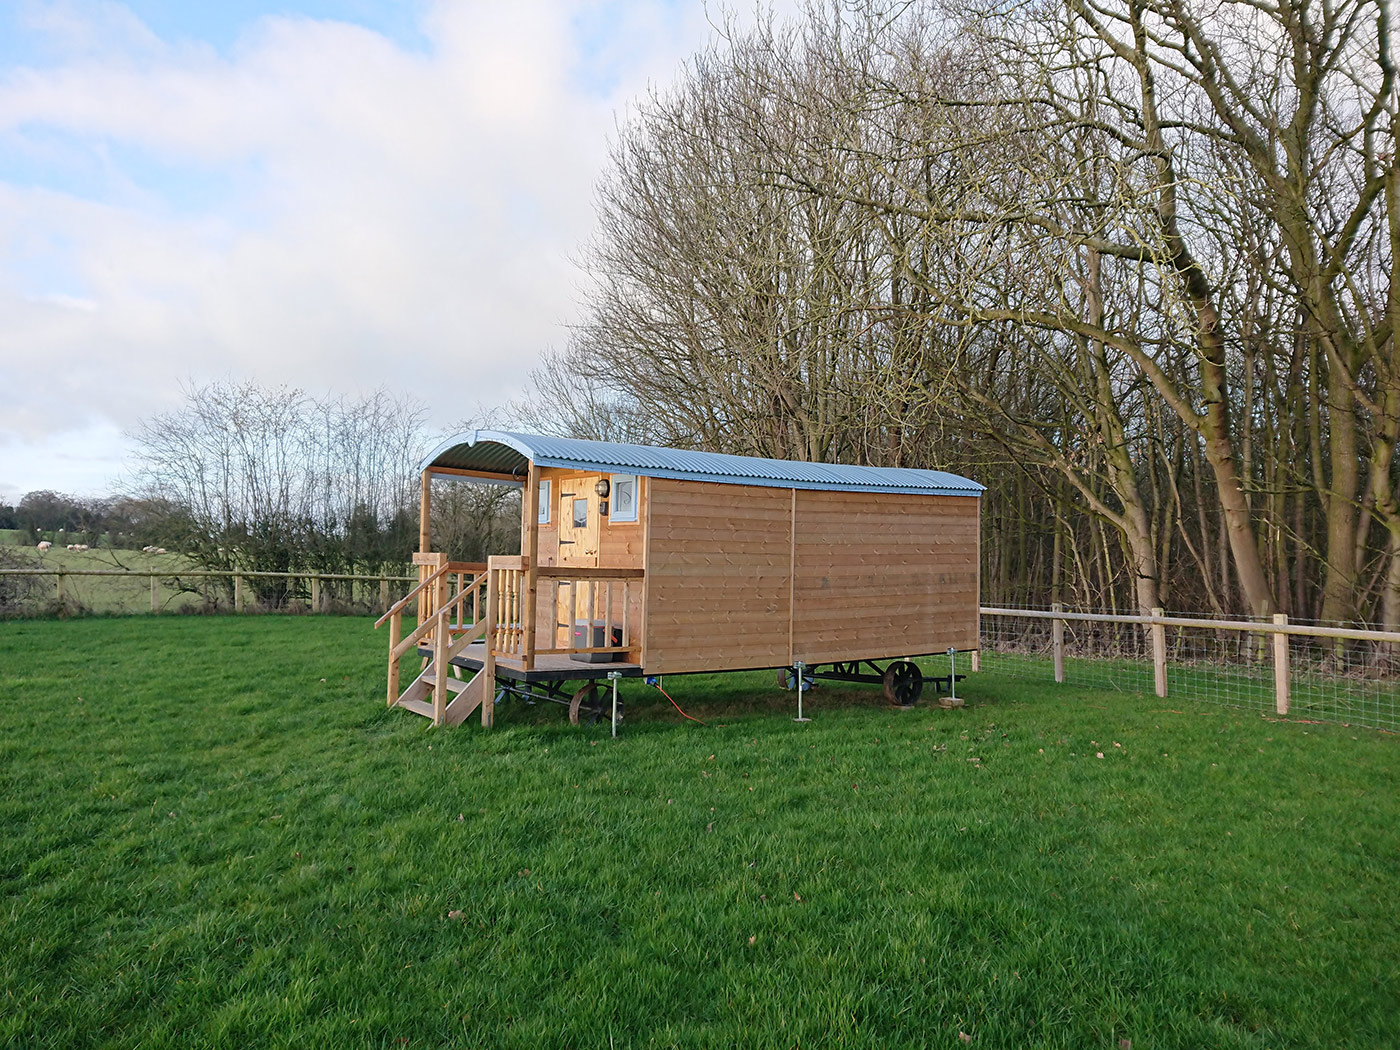 Castle Farm Holiday Shepherd's Hut Glamping Shropshire